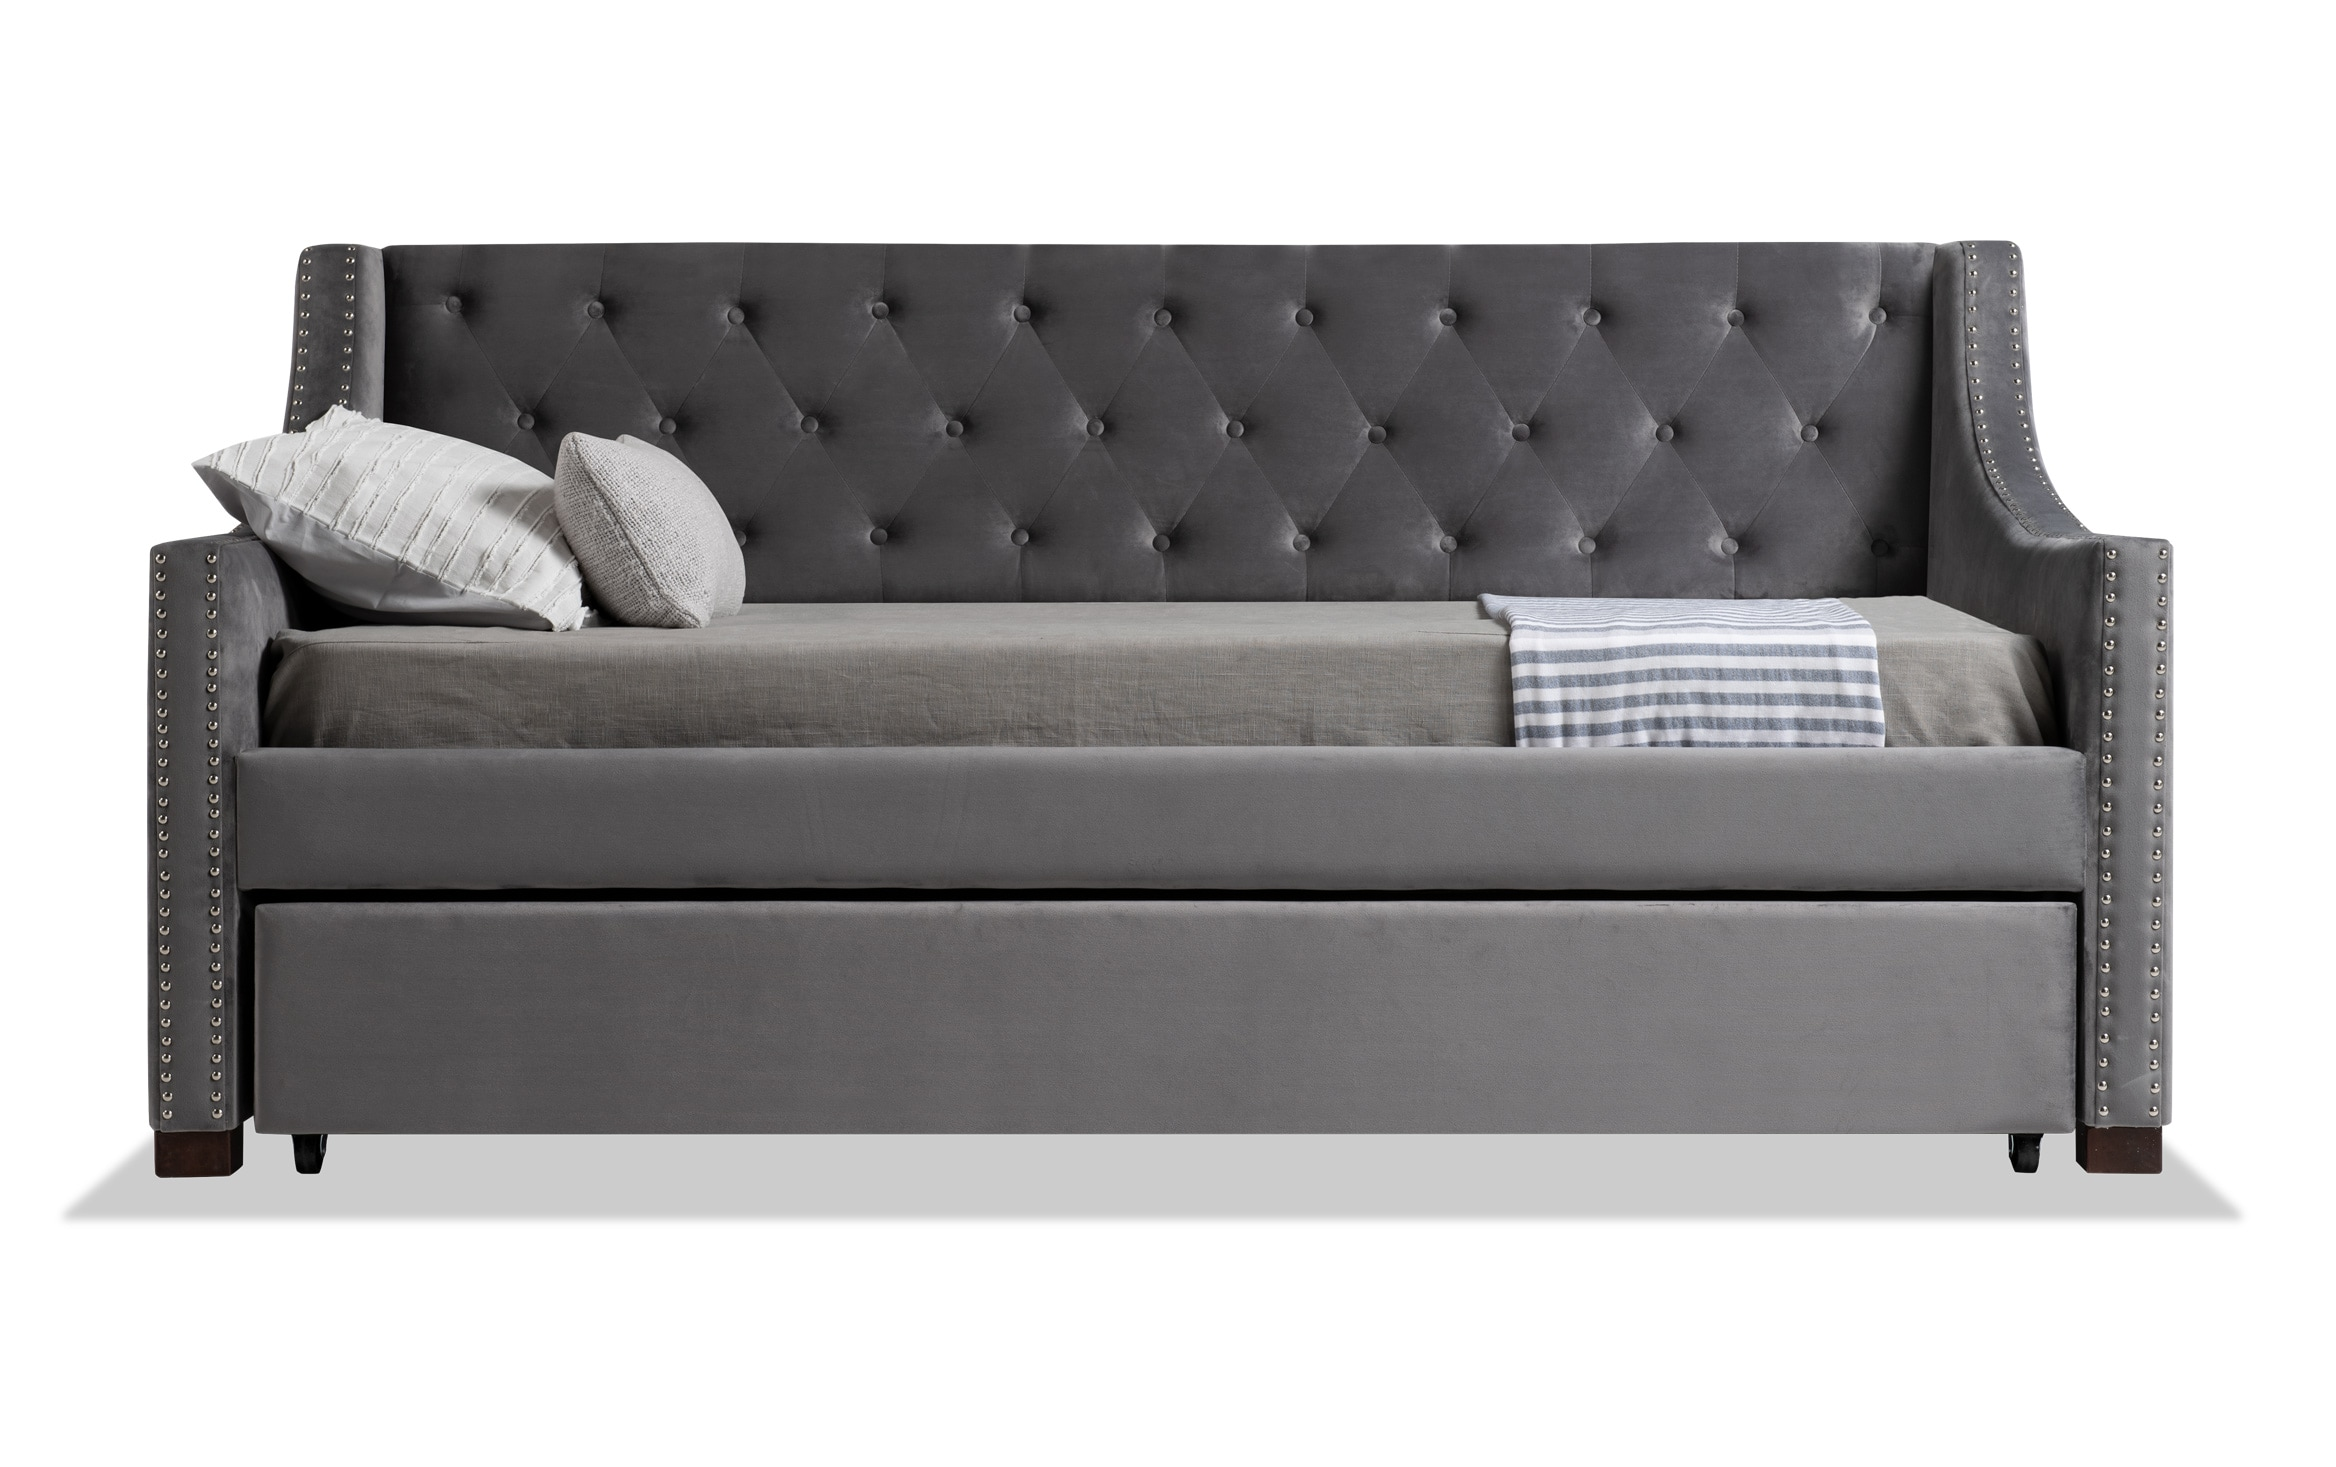 Chloe Twin Gray Upholstered Daybed With Twin Trundle 2 Twin Perfection Mattresses Bobs Com